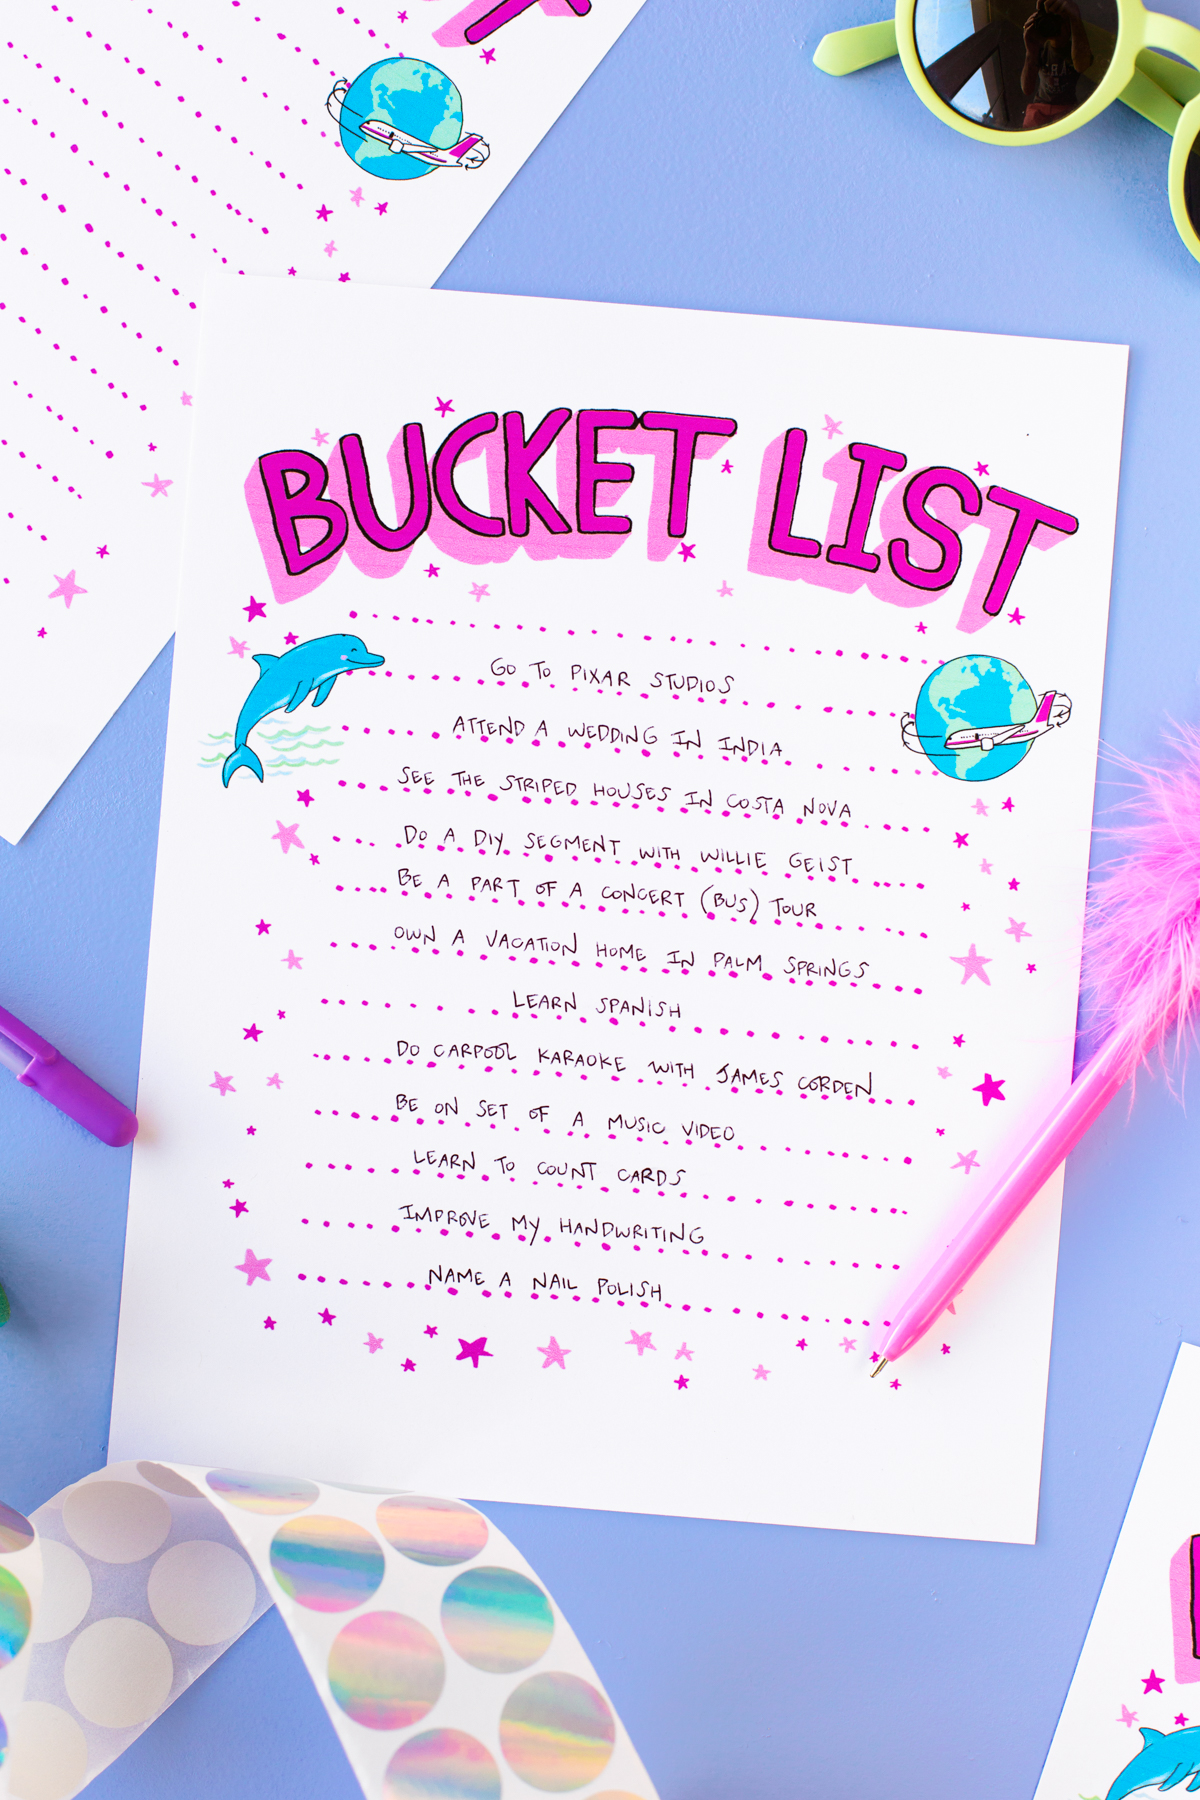 Valentine S Day 2017 Gifts My Bucket List What S On Yours Studio Diy